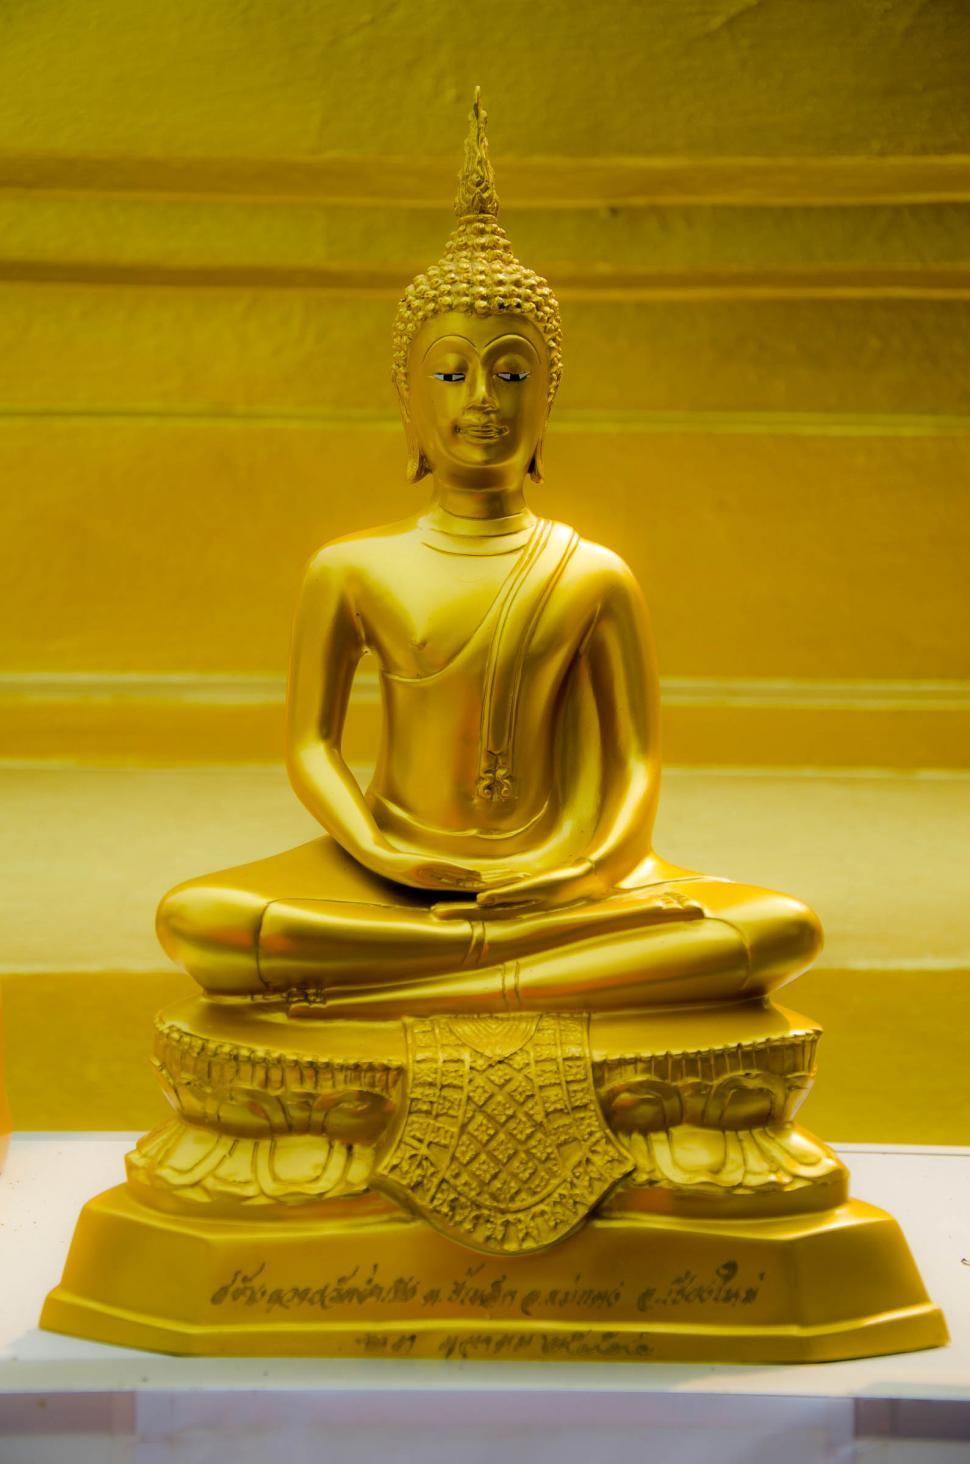 Download Free Stock HD Photo of Statue of Buddha Online